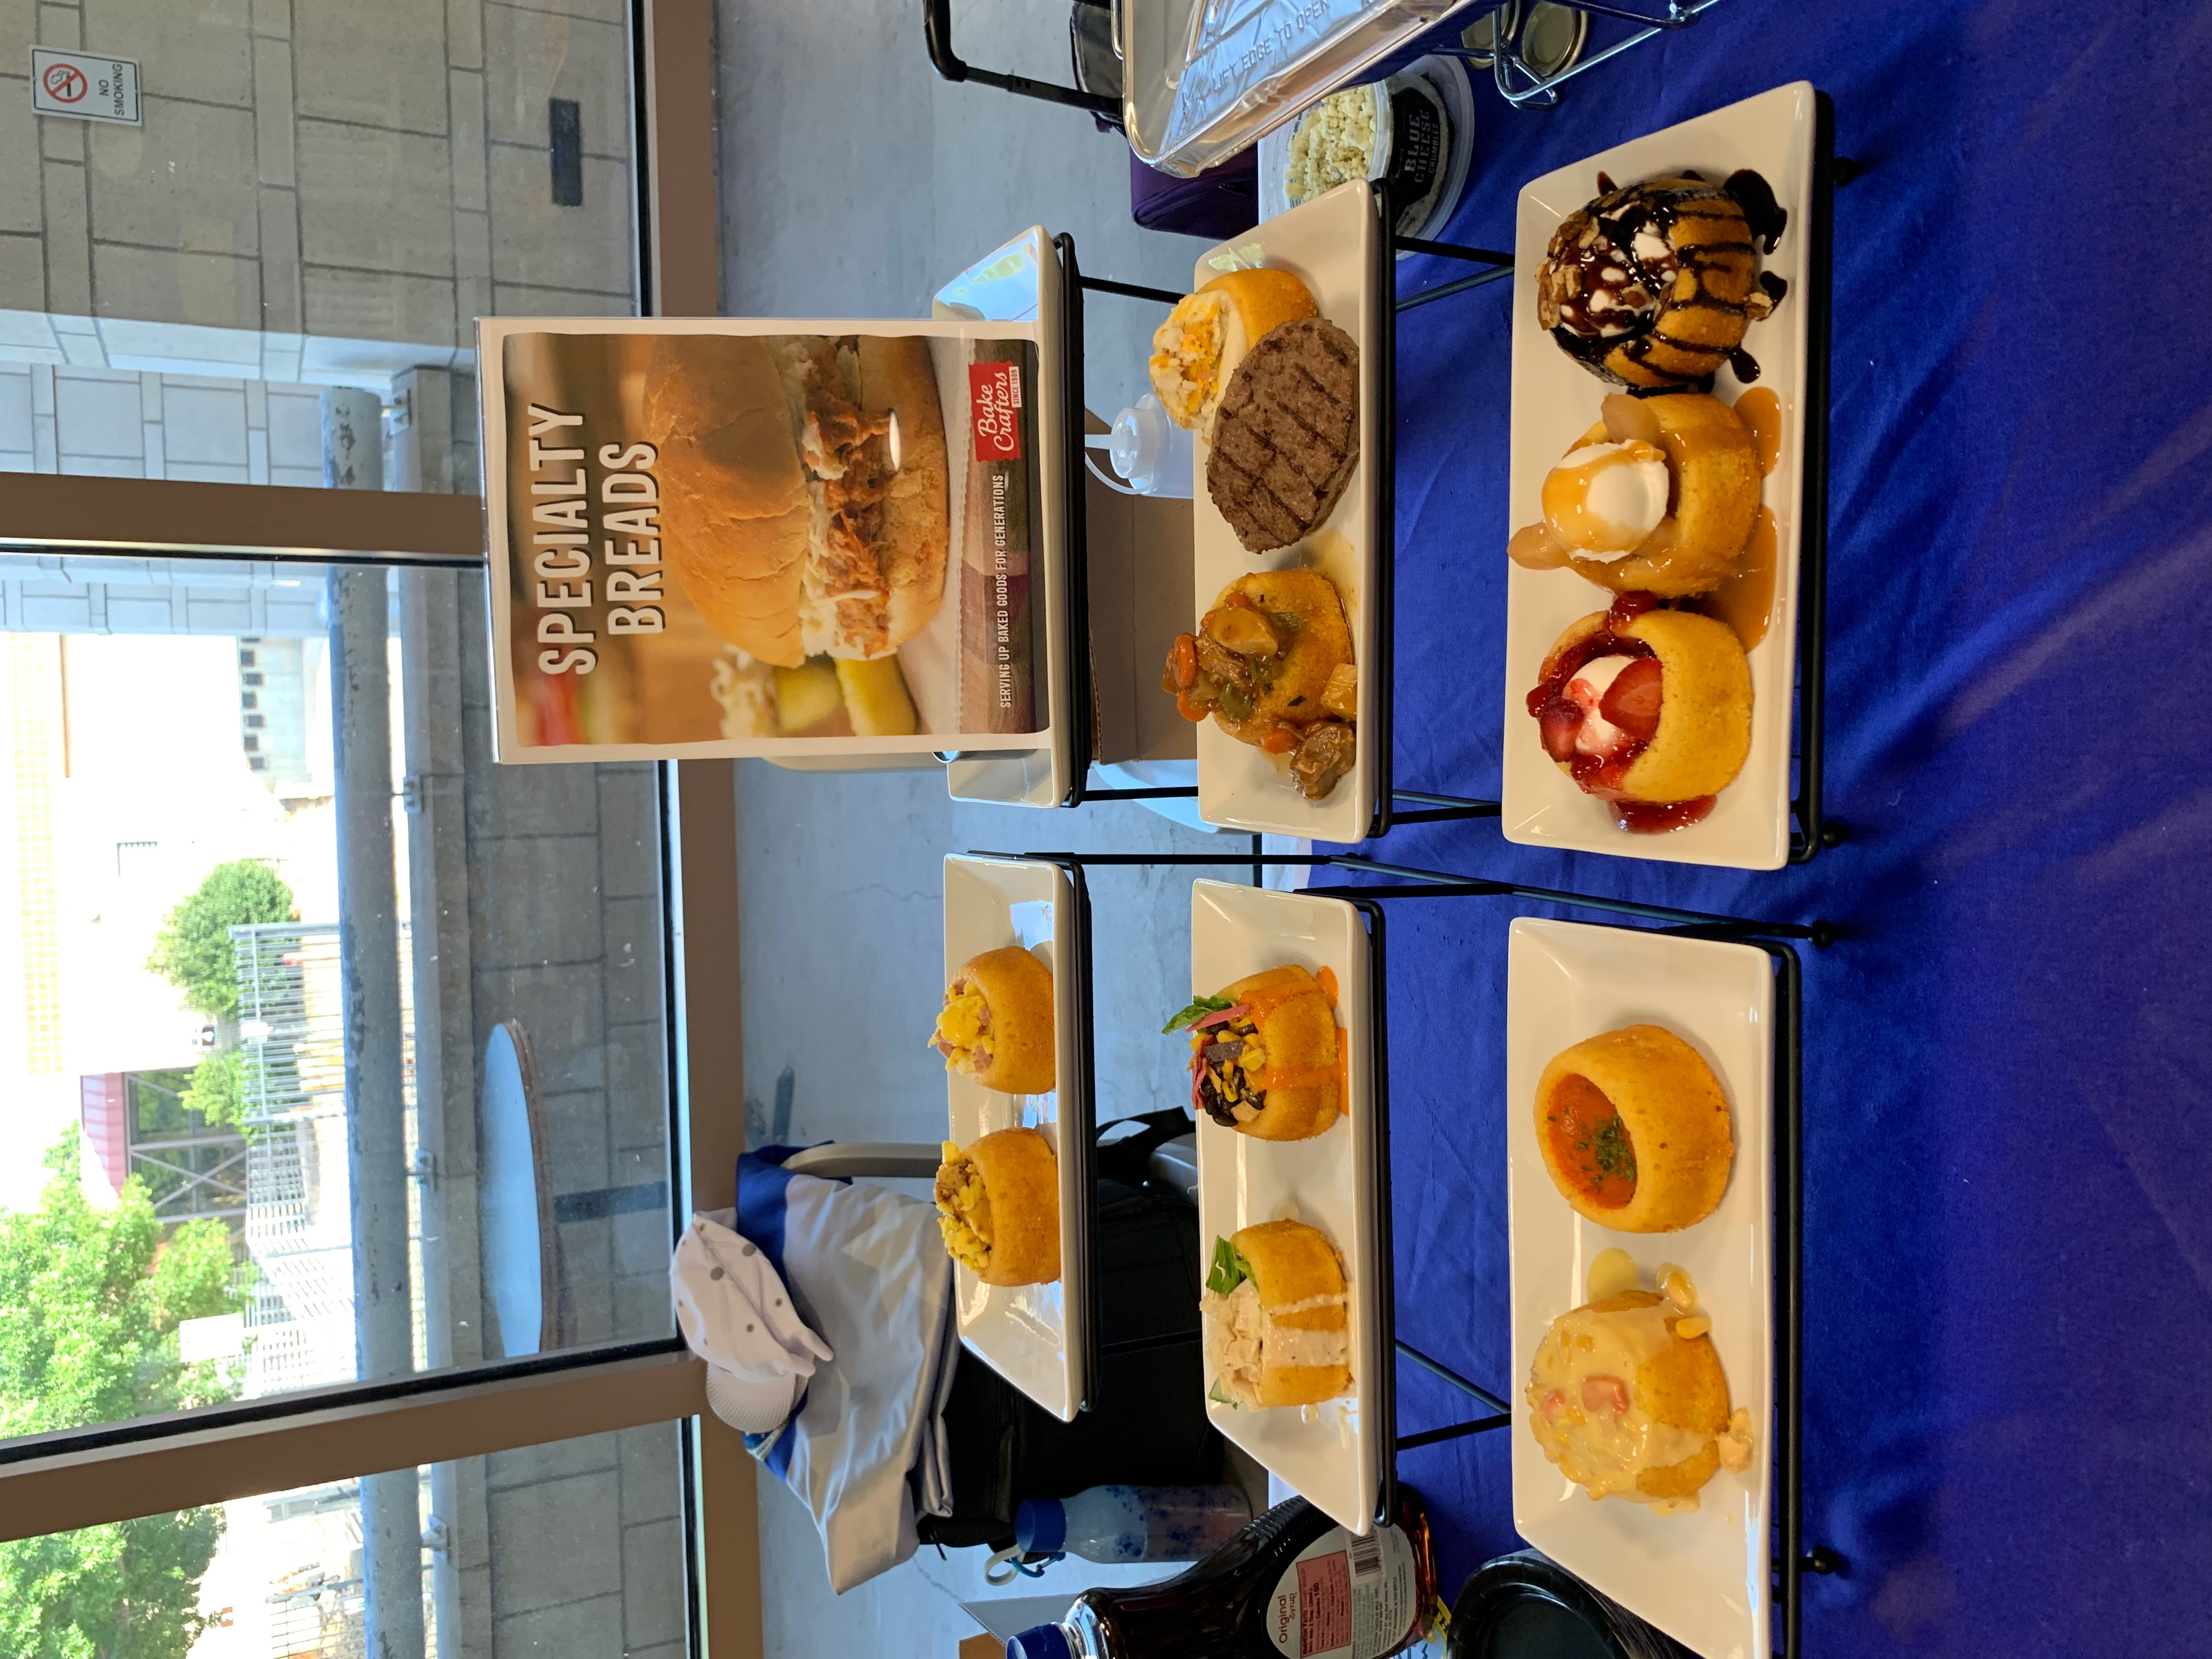 Display Samples of the Cornbread Bowls with various food products displayed in them.